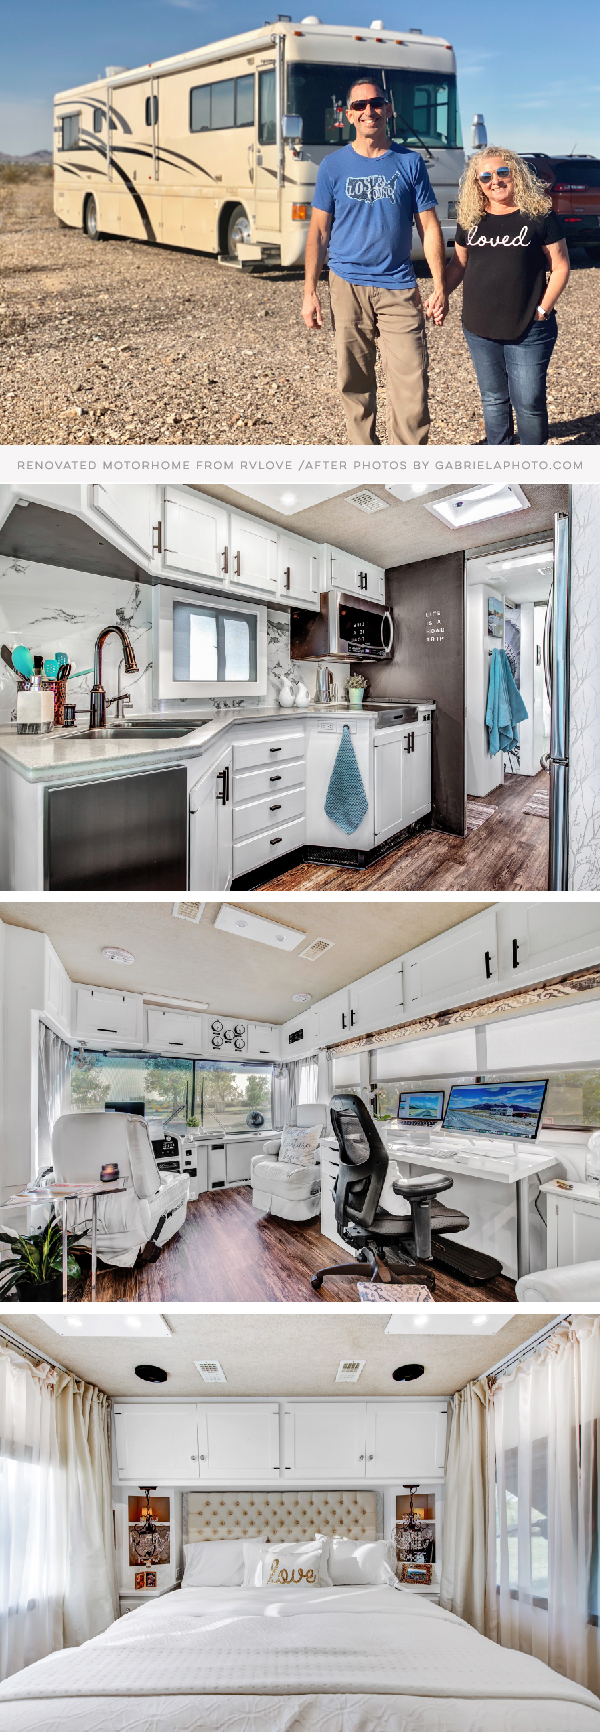 Motorhome Remodel featuring RVLove